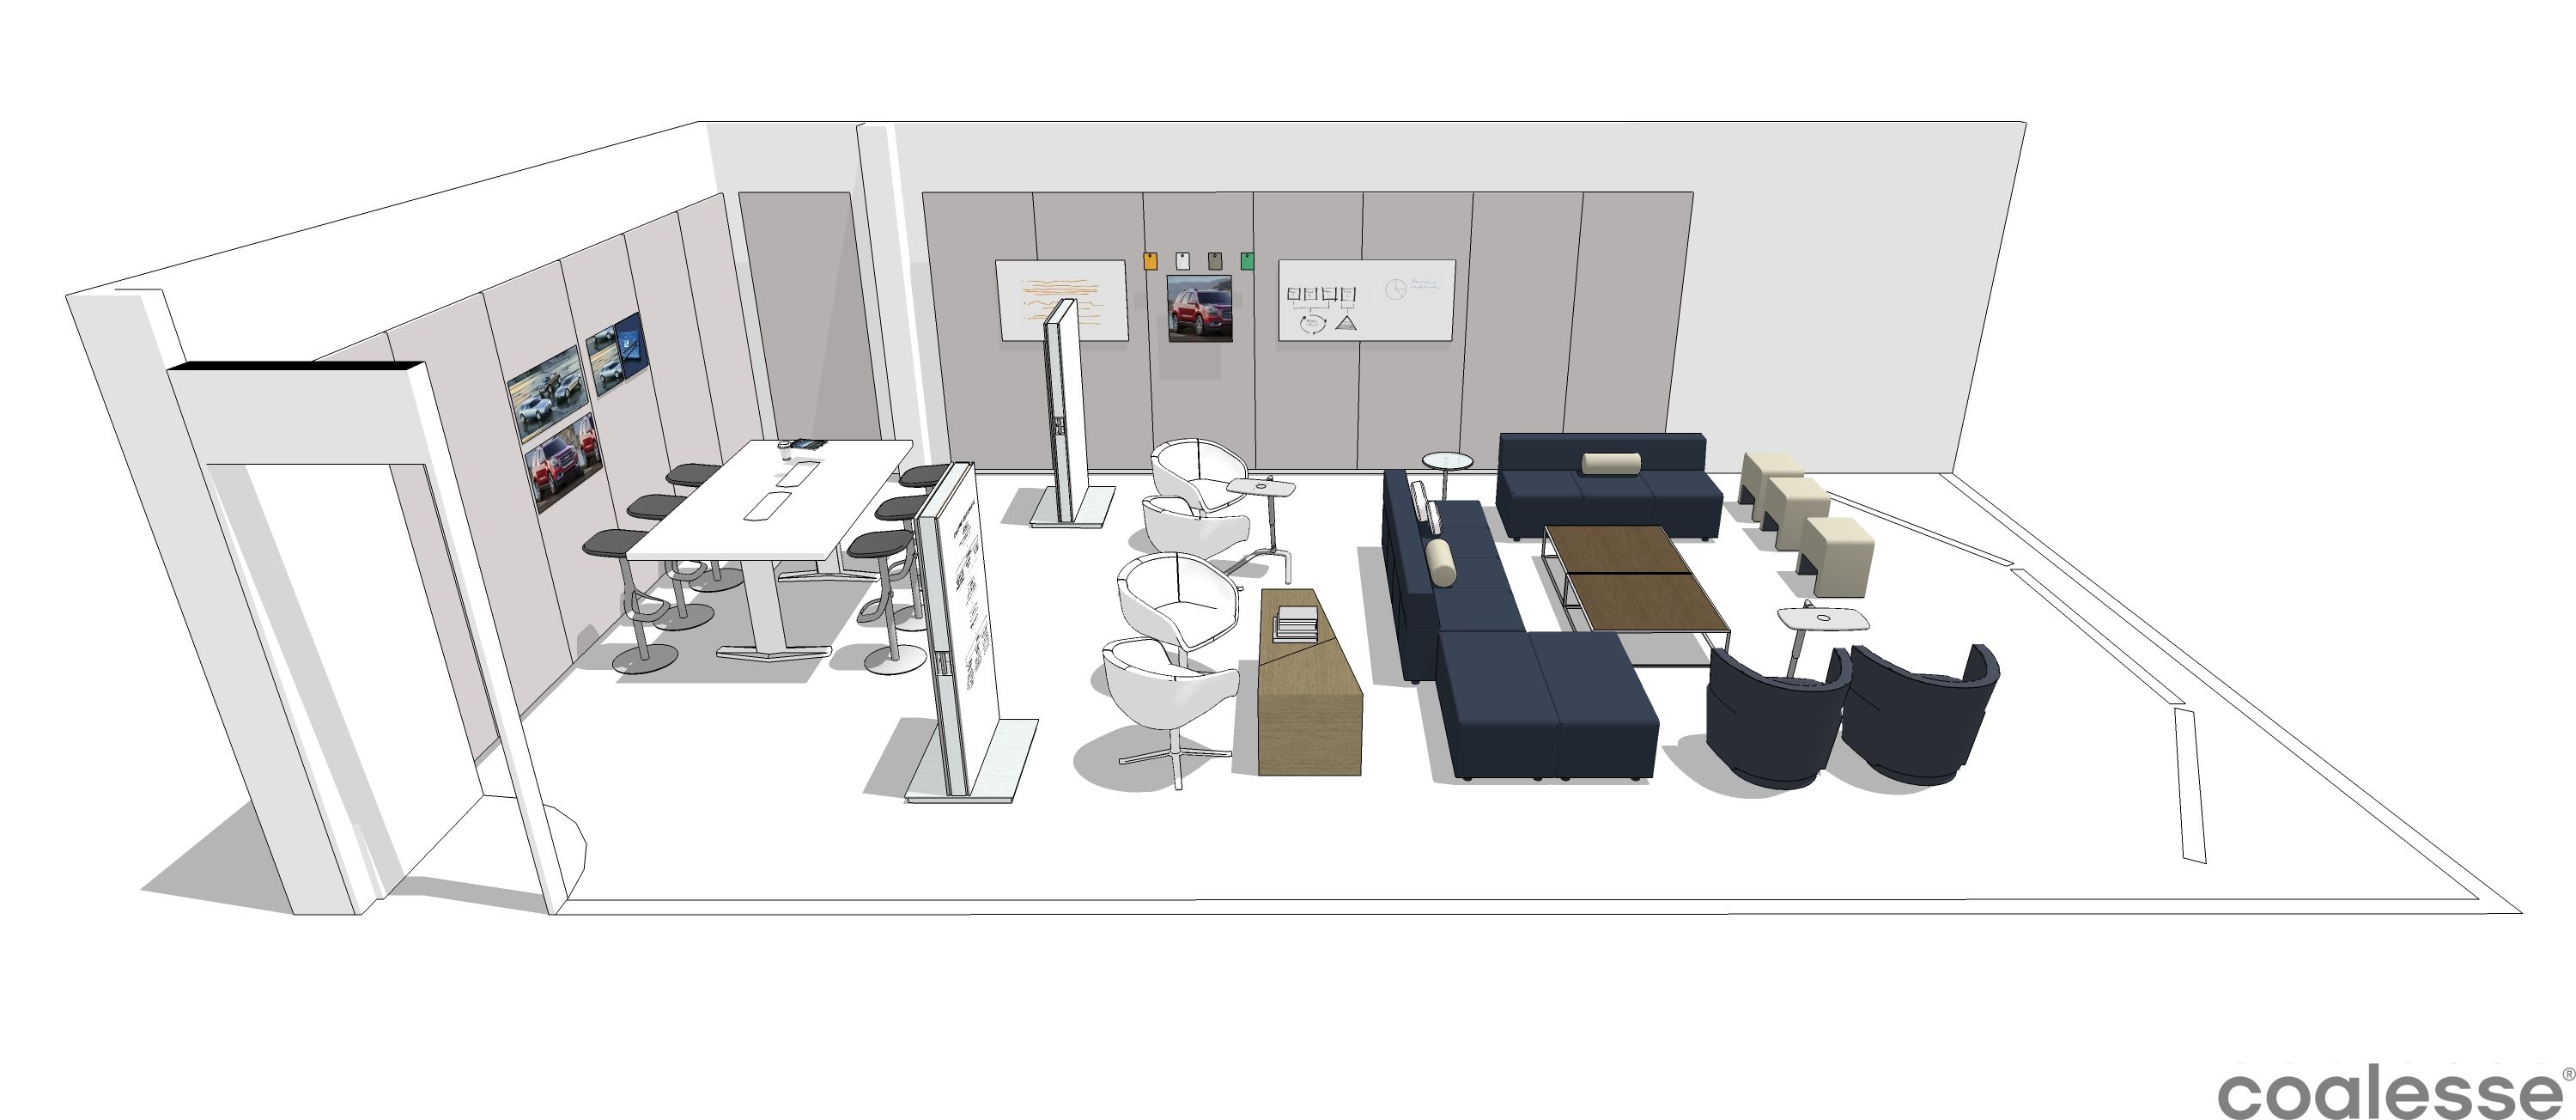 A collaborative project / presentation space for the creative team ...